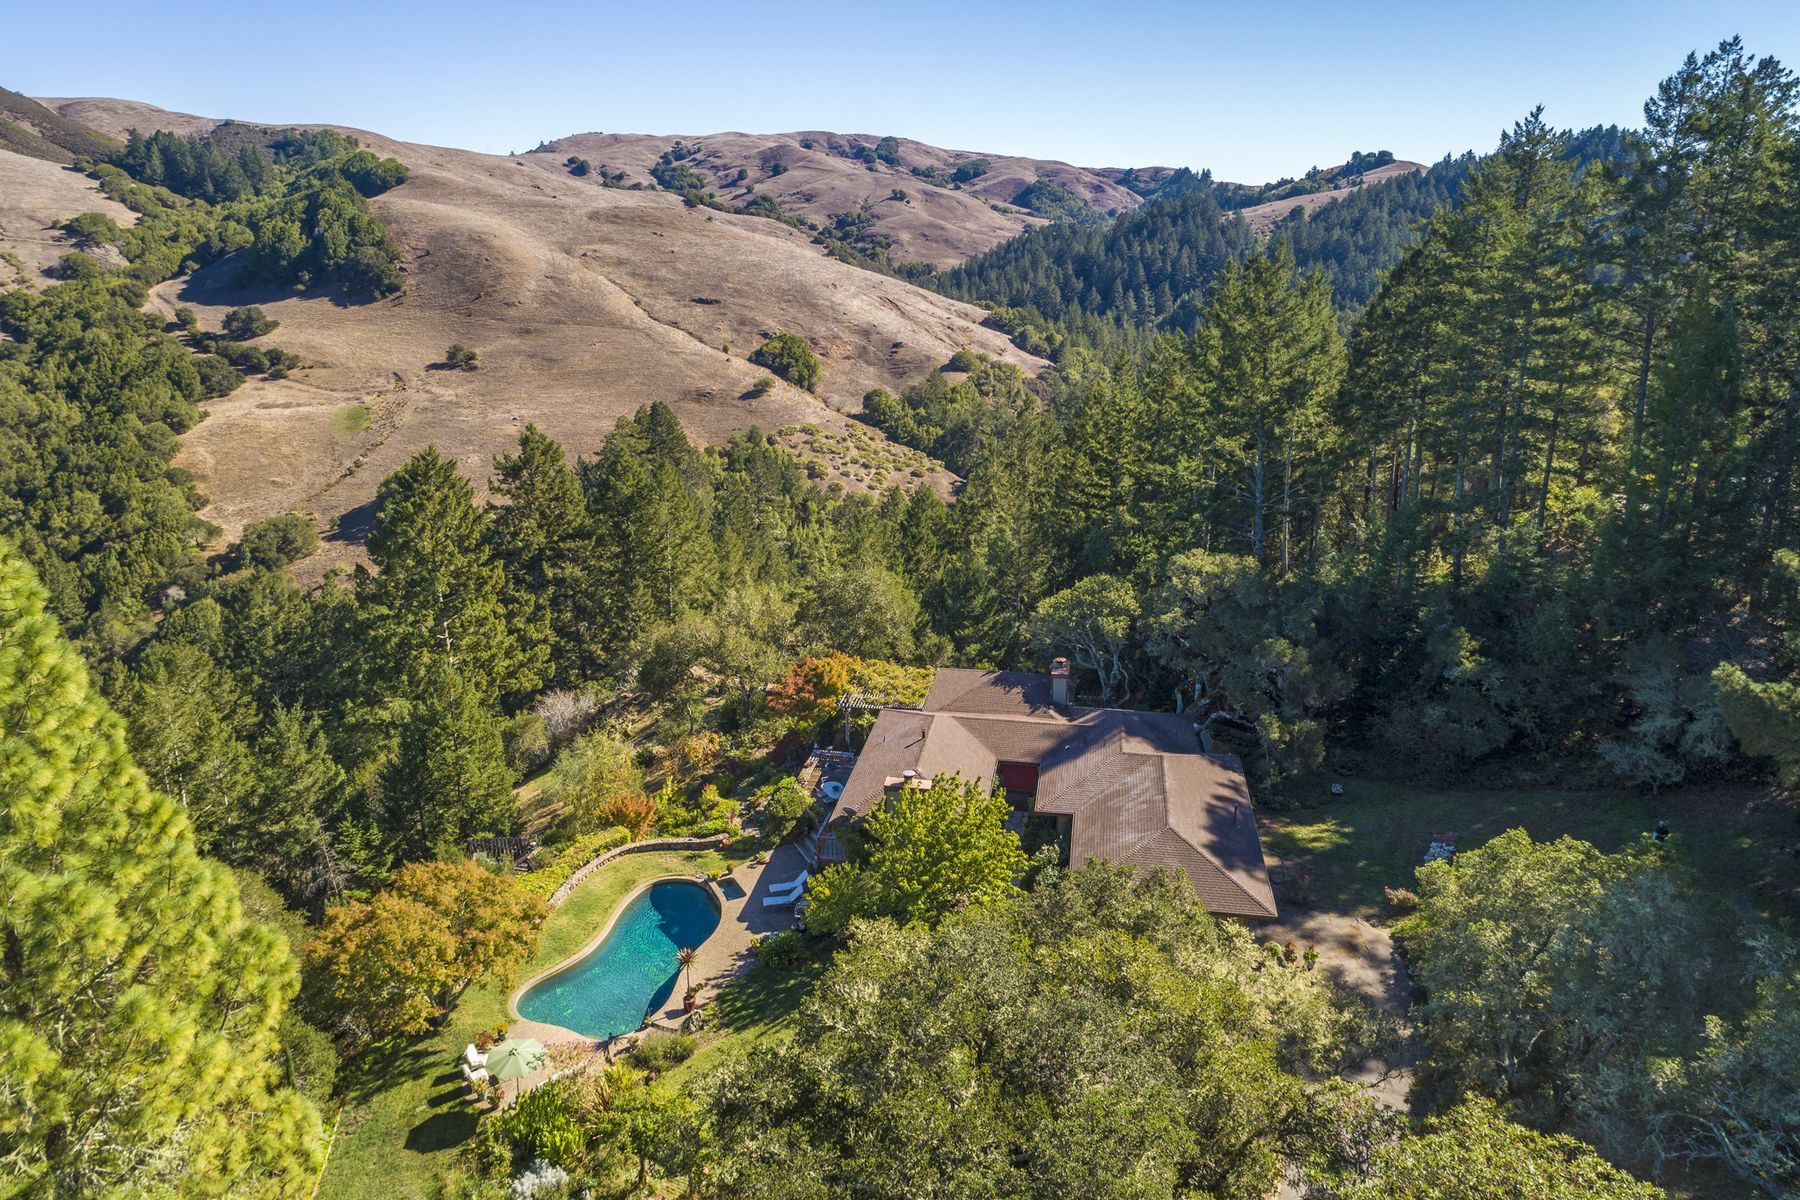 Single Family Homes for Sale at Nicasio Country 54 Los Pinos Spur Nicasio, California 94946 United States